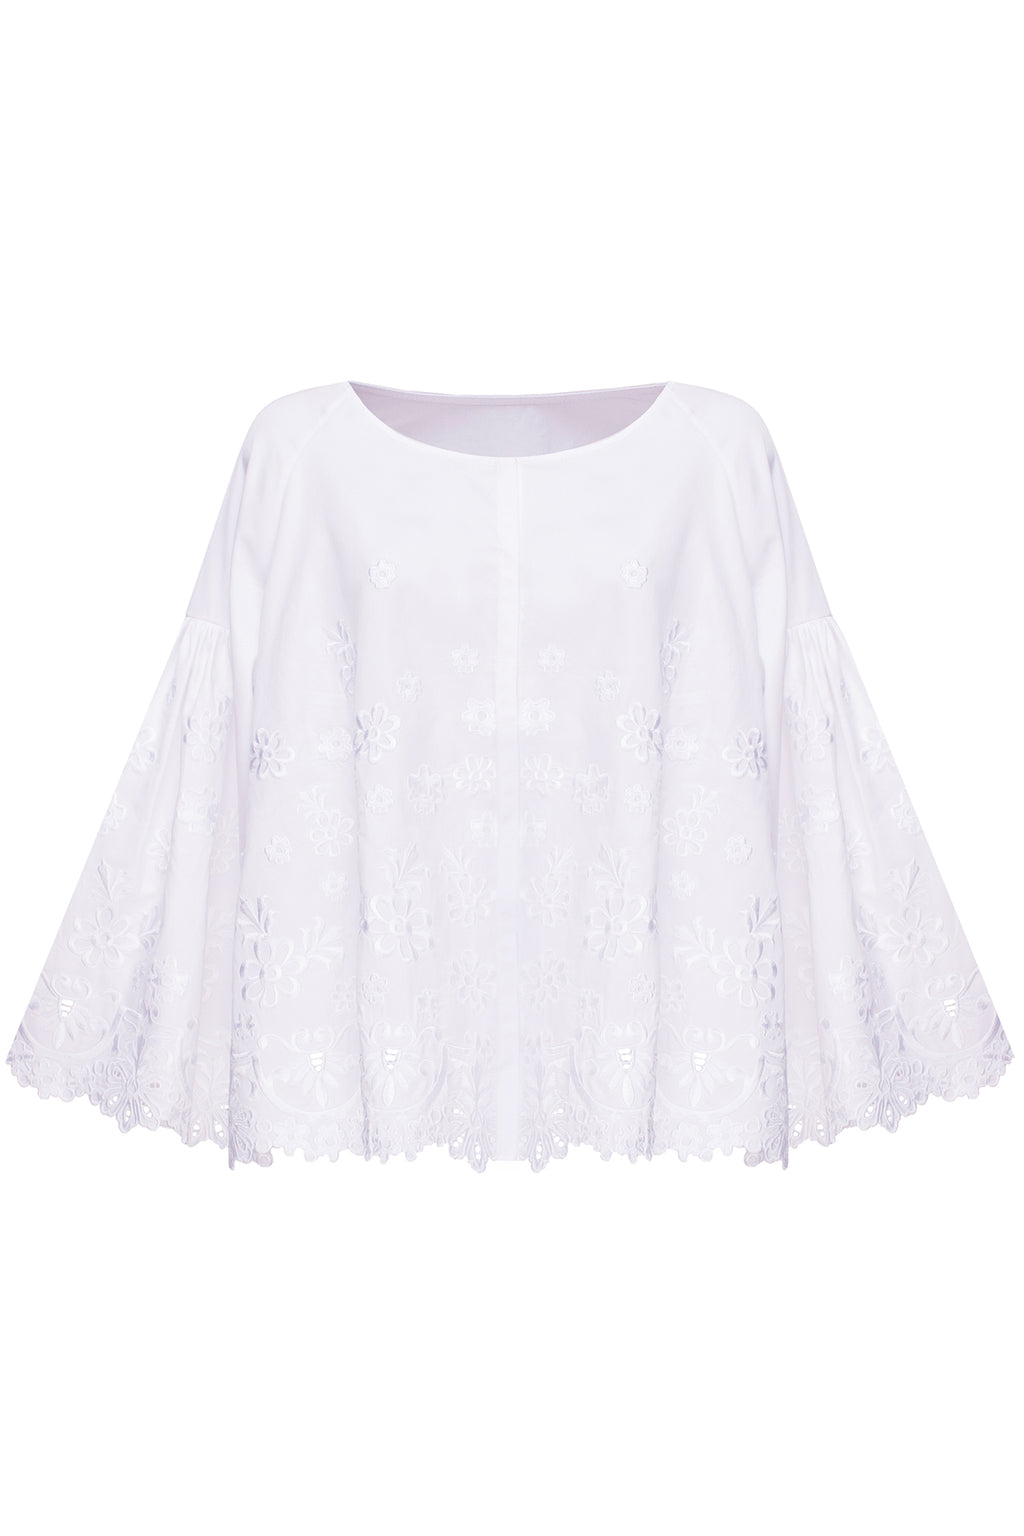 CHAMOMILE blouse in white cotton